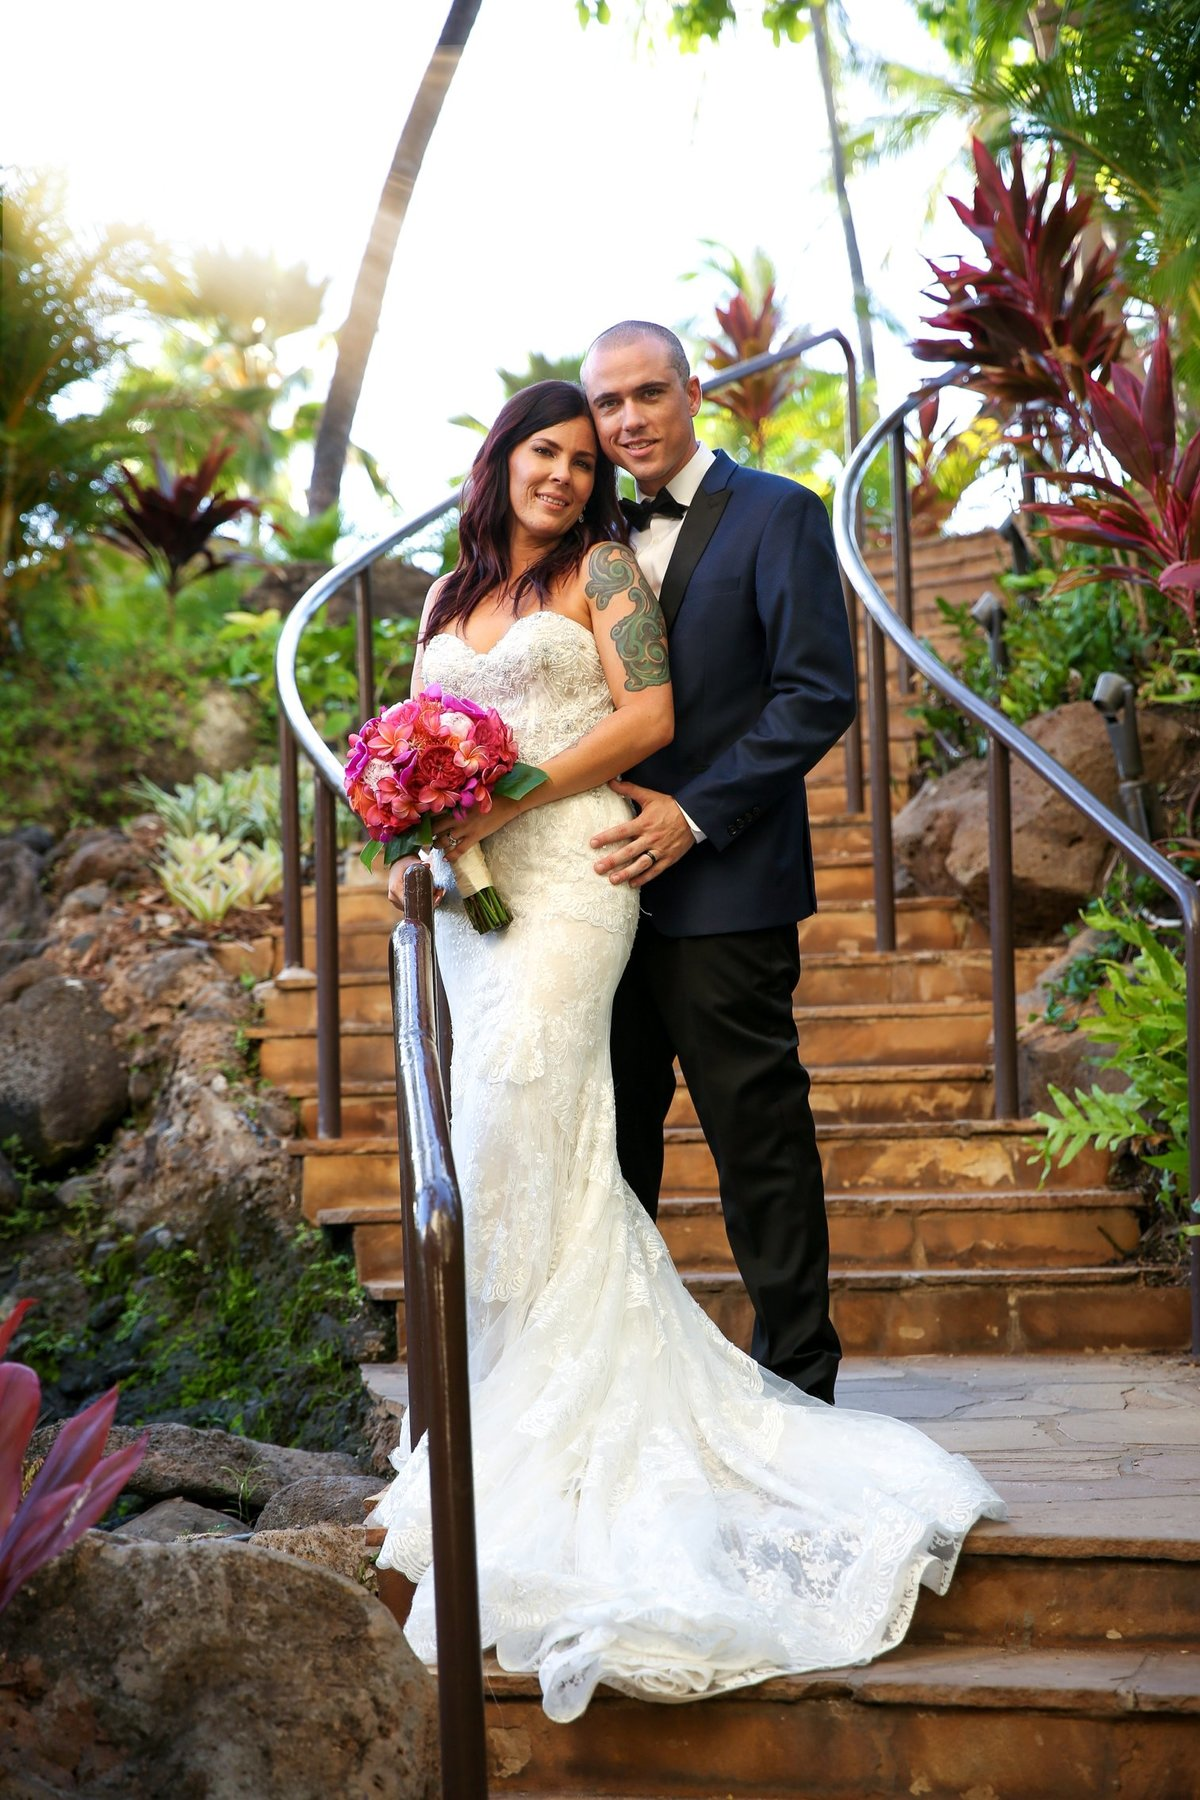 Capture Aloha Photography with Bride and Groom at Stairway